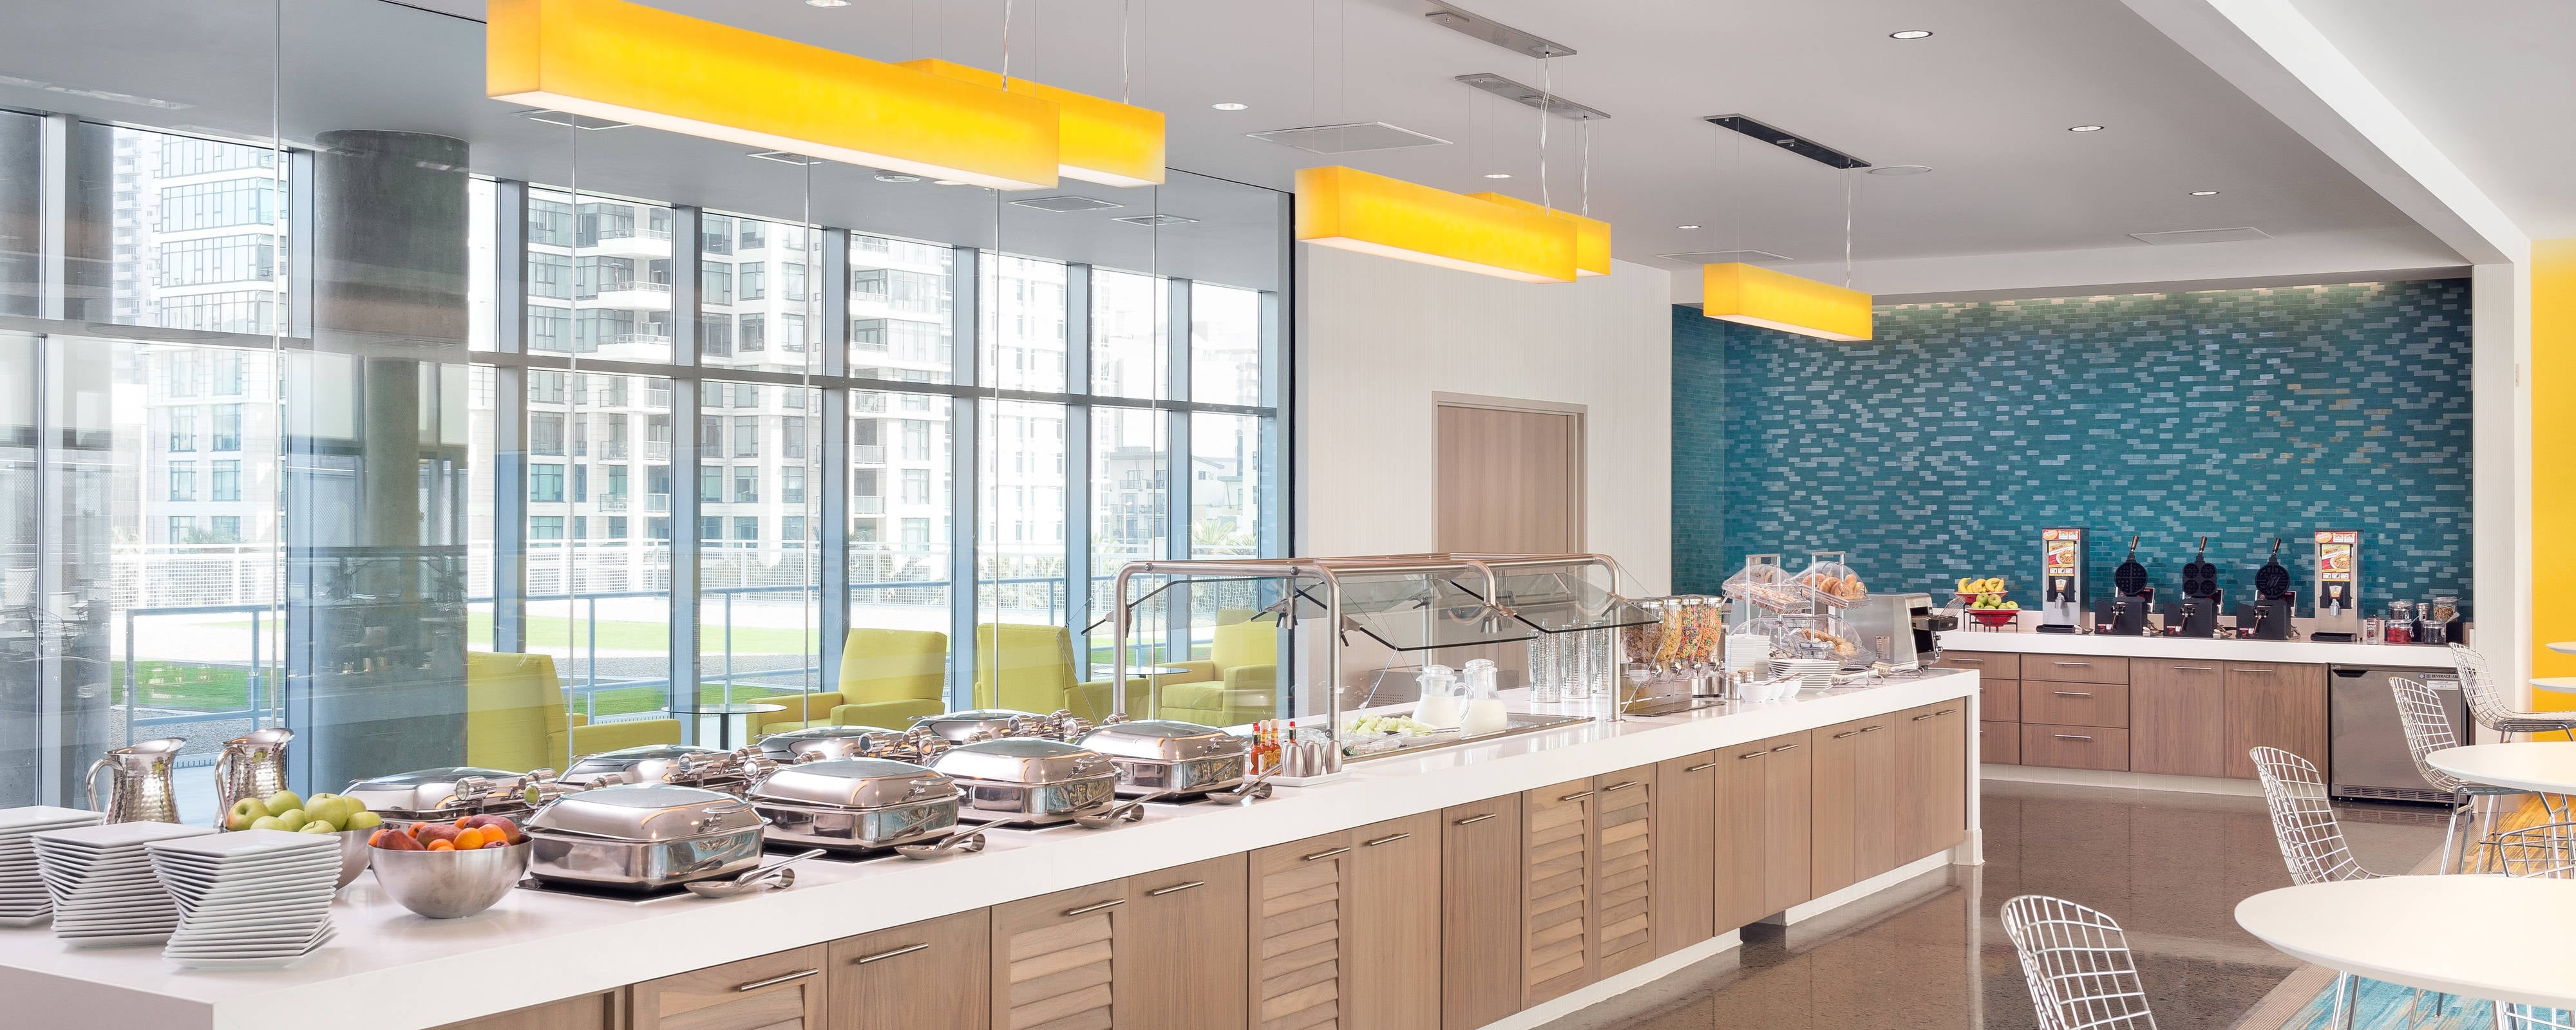 Free Hotel Breakfast Springhill Suites San Diego Downtown